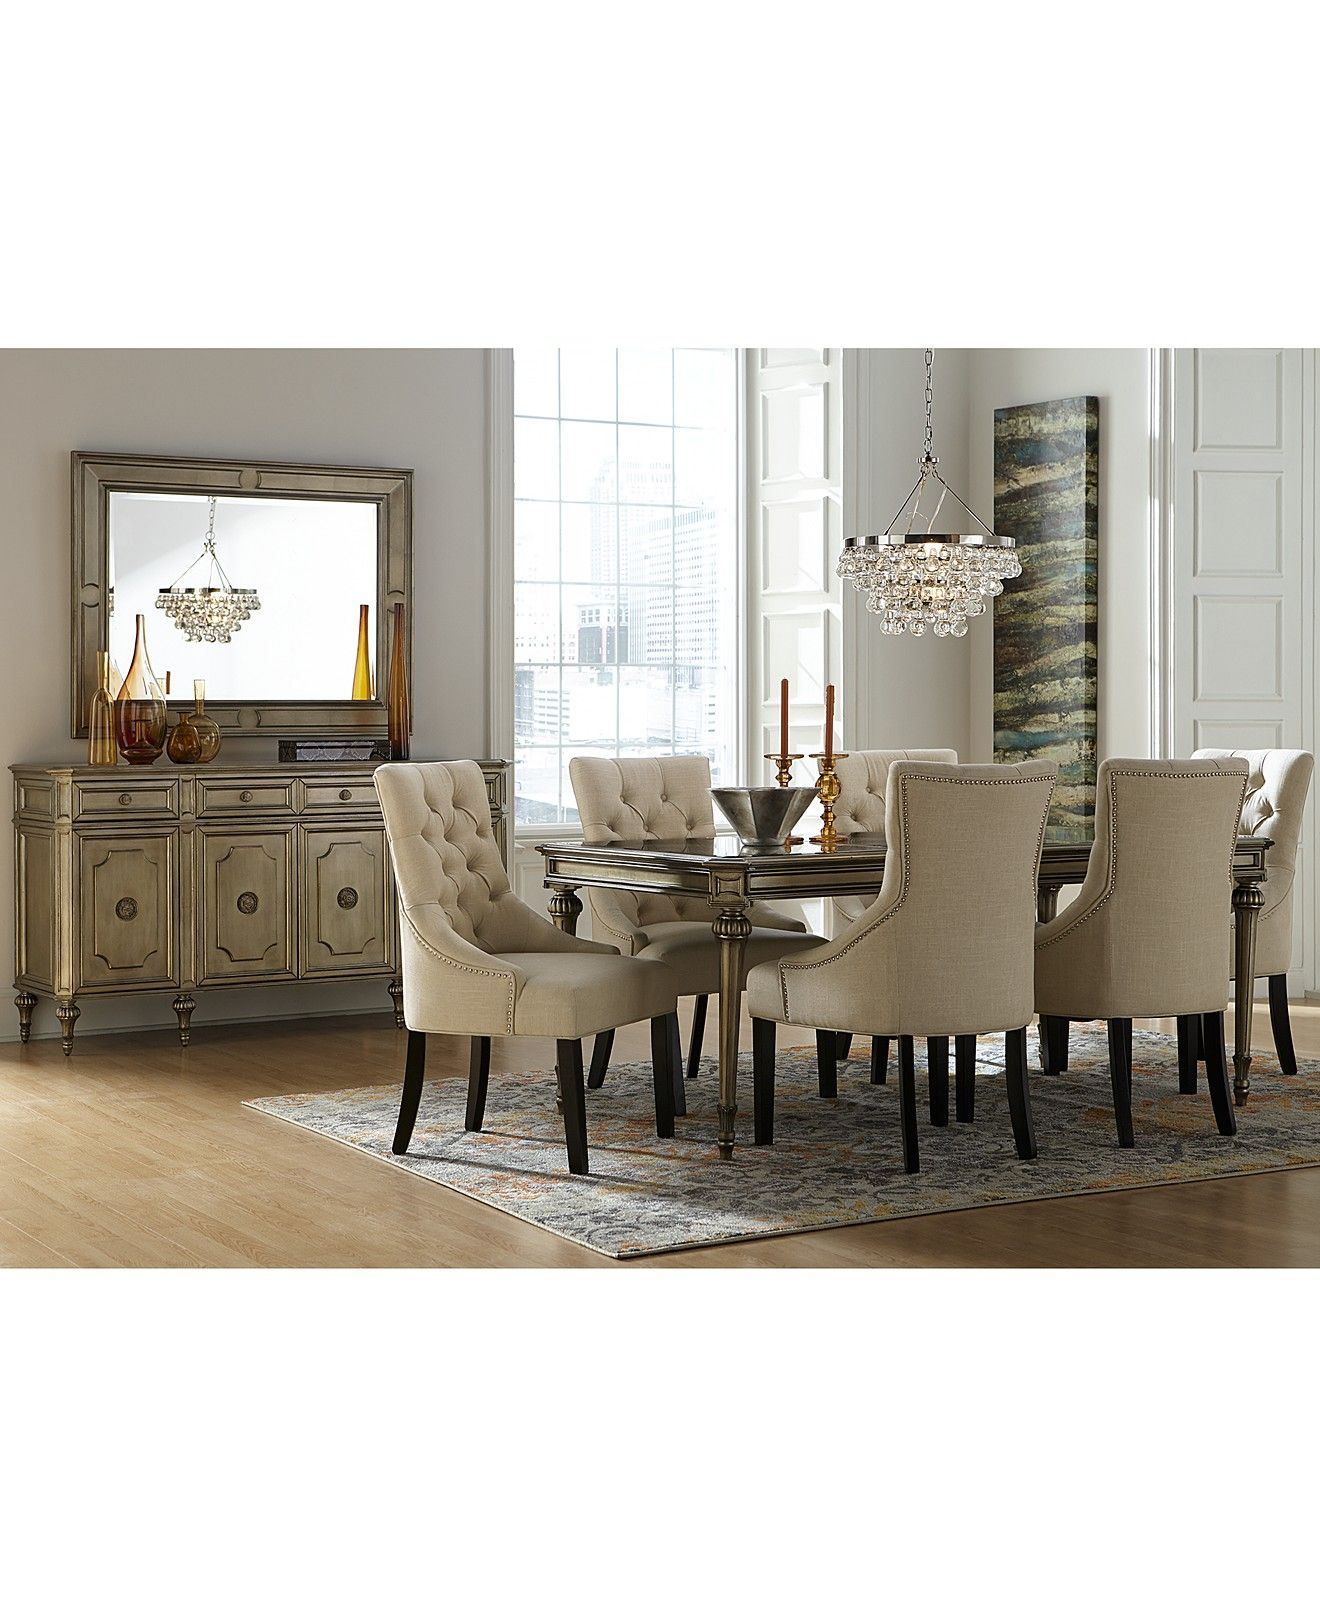 Prosecco Dining Set With Marais Chairs